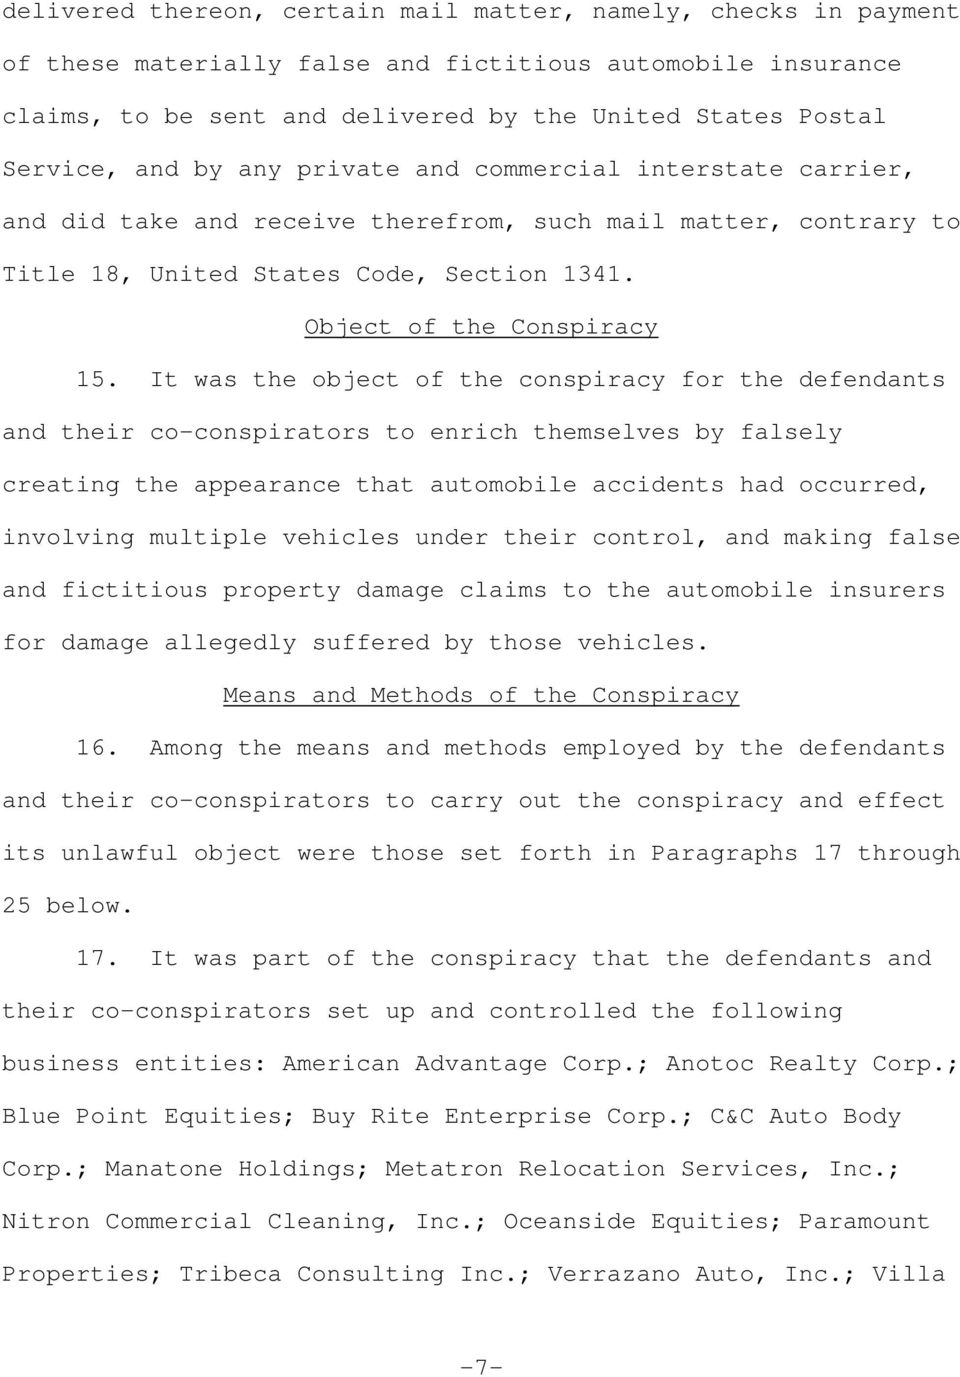 It was the object of the conspiracy for the defendants and their co-conspirators to enrich themselves by falsely creating the appearance that automobile accidents had occurred, involving multiple